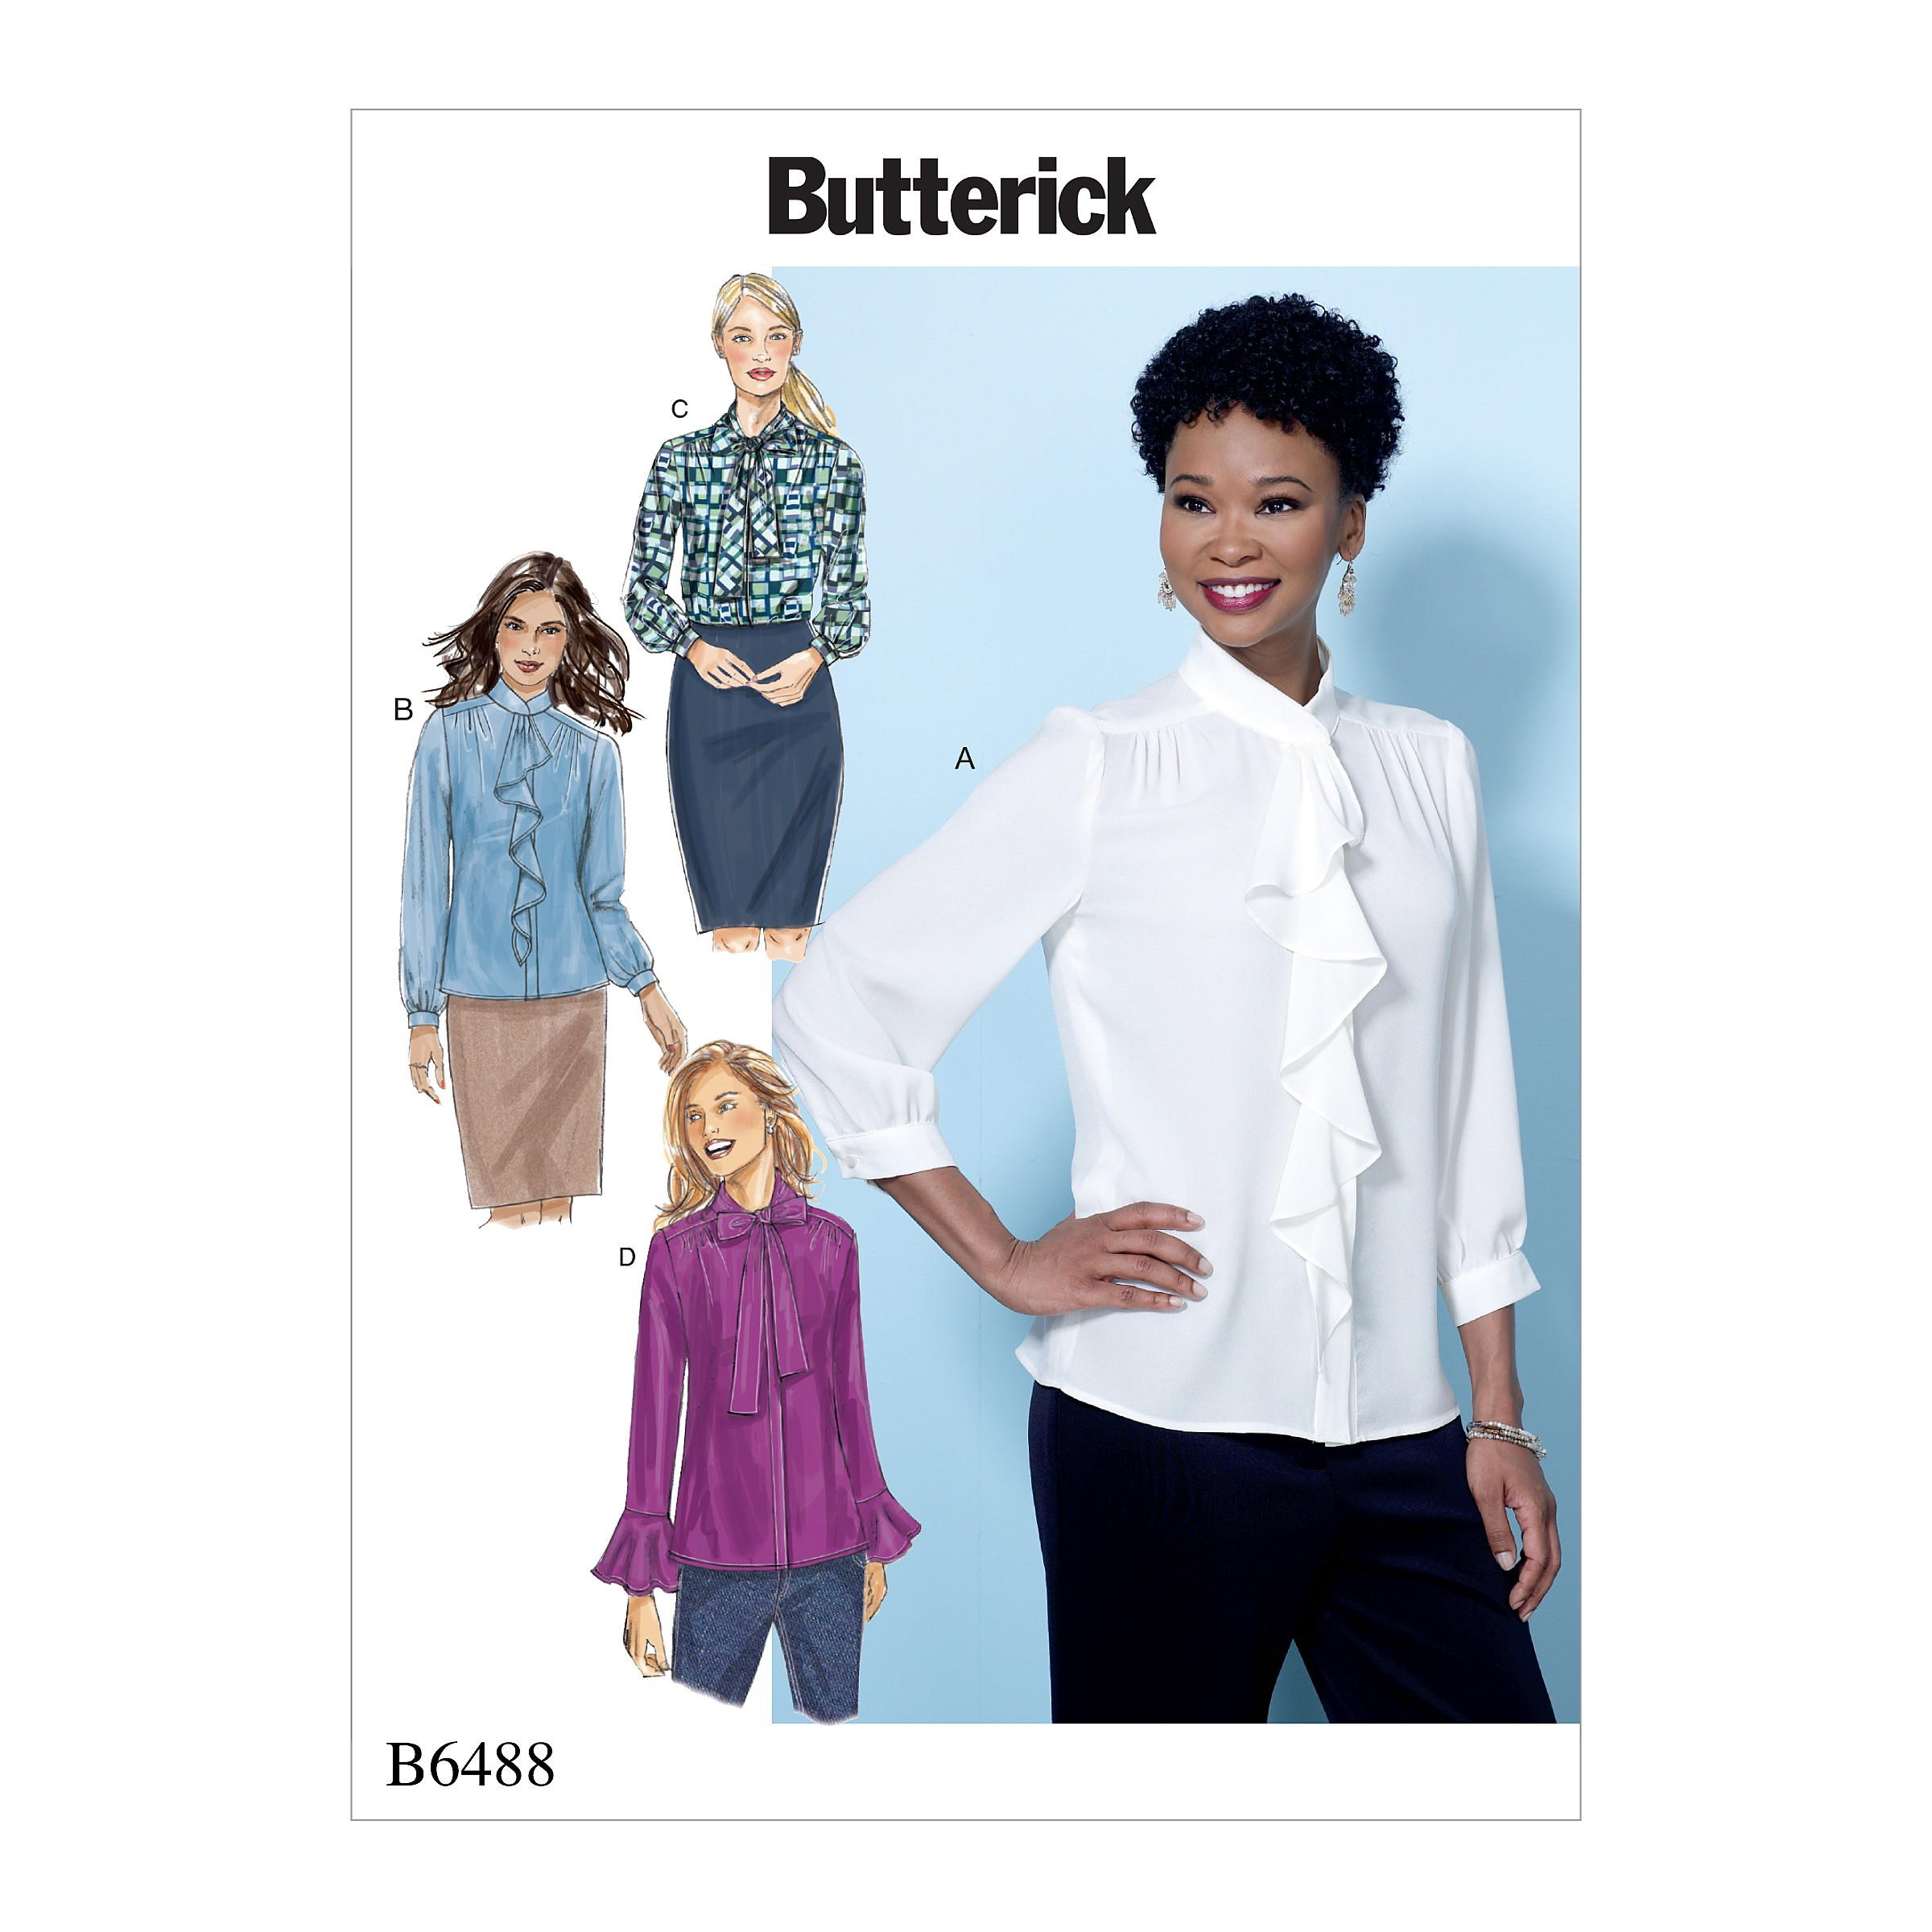 Butterick Sewing Pattern 6487 Misses' Tops With Gathered Detail Neck